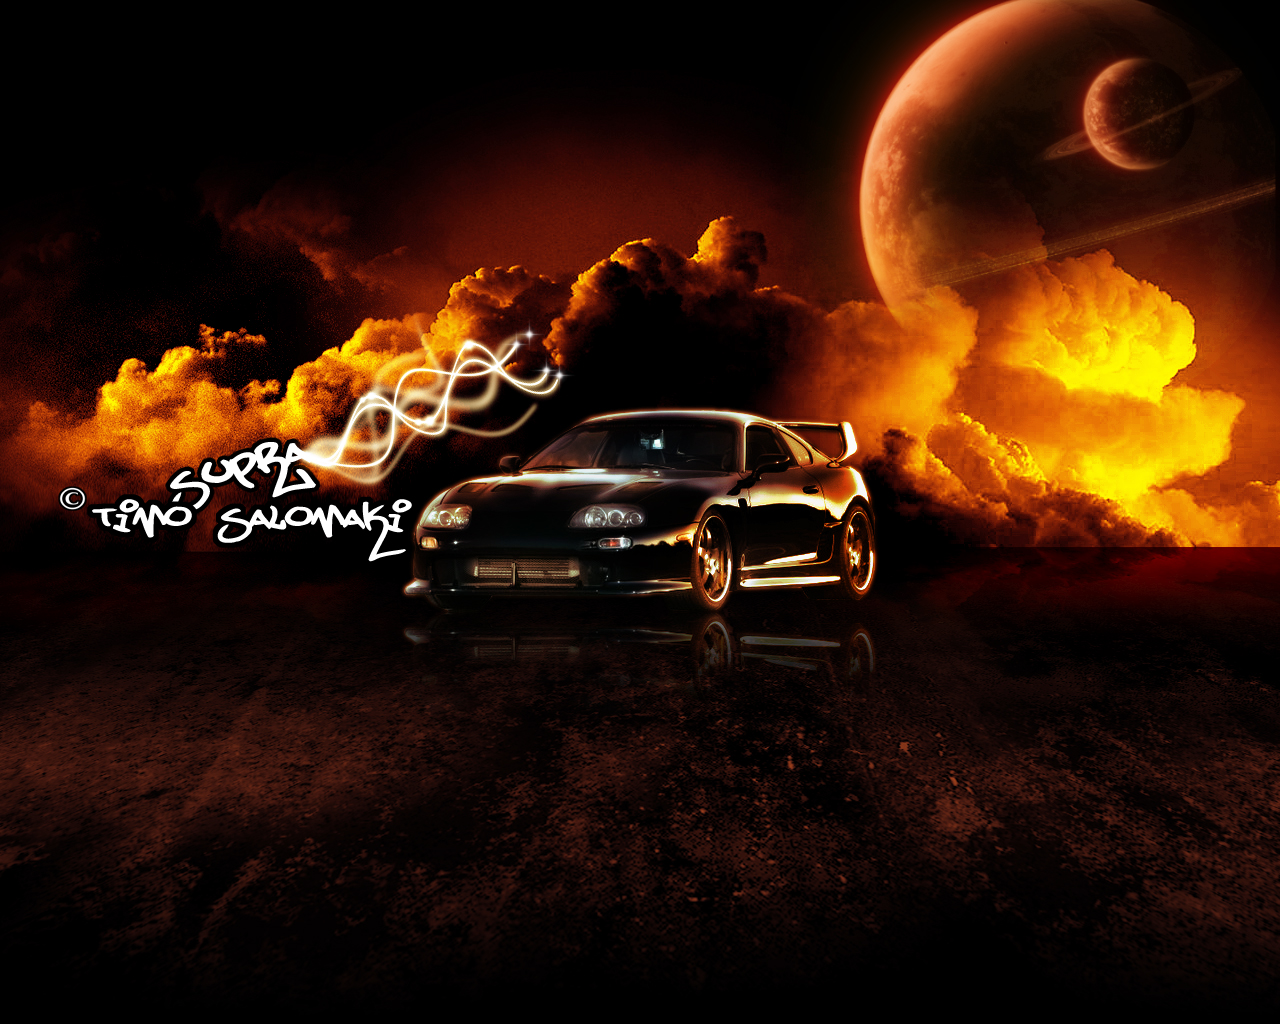 toyota supra wallpaper desktop   Quotekocom 1280x1024